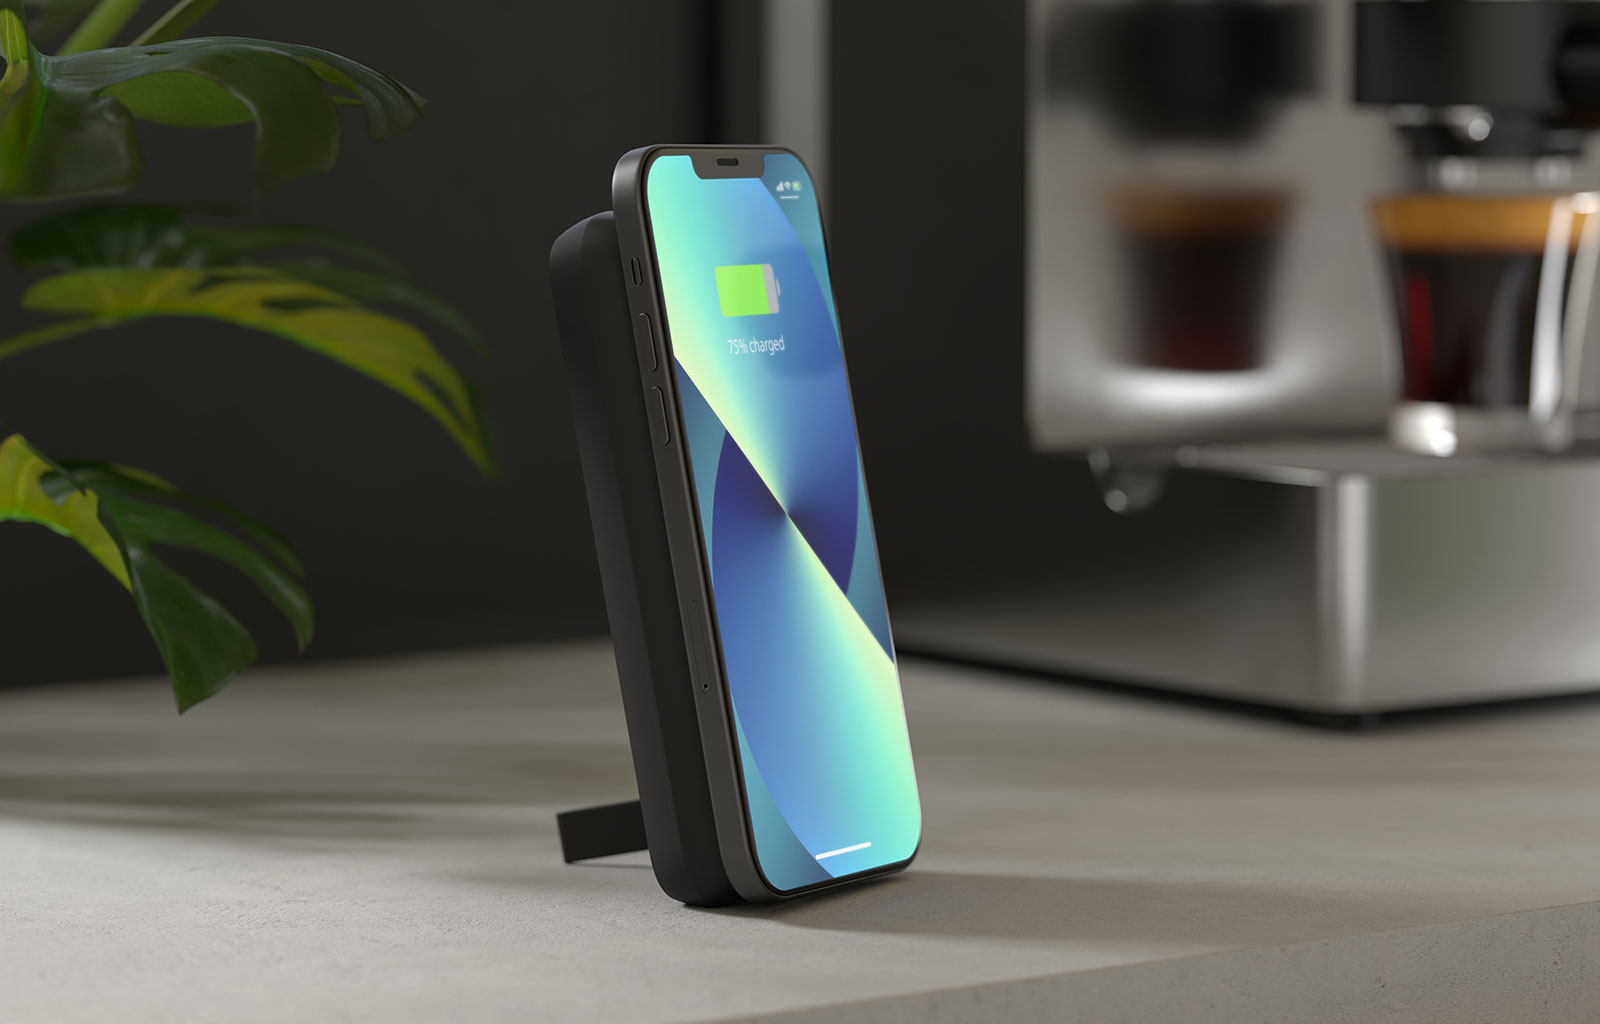 Magnetic Powerbank with iPhone 13